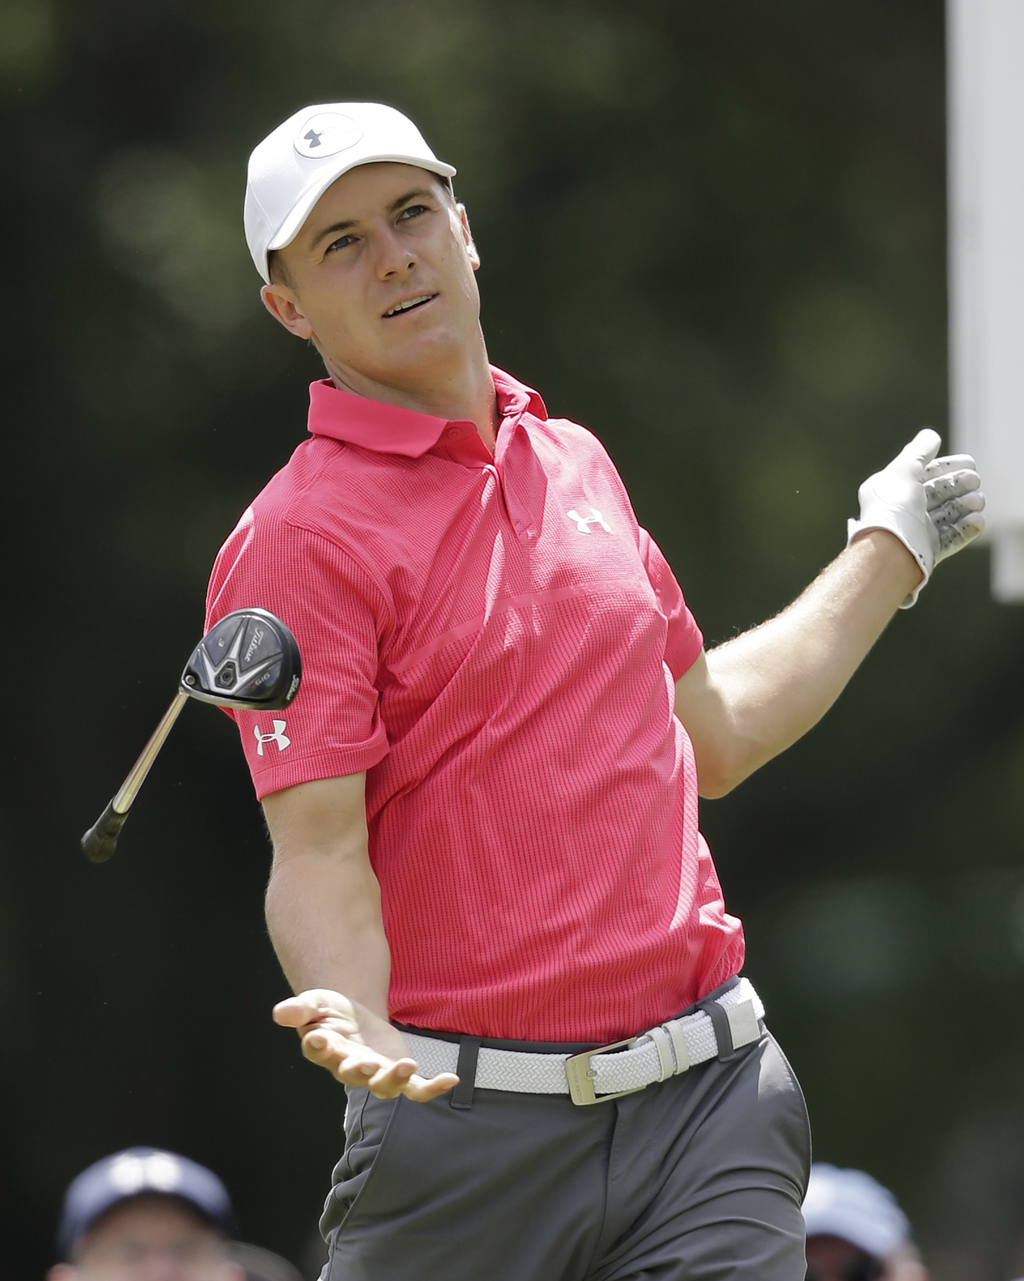 Jordan Spieth drops his club after teeing off off on the third hole during the third round of the Bridgestone Invitational golf tournament at Fireston...